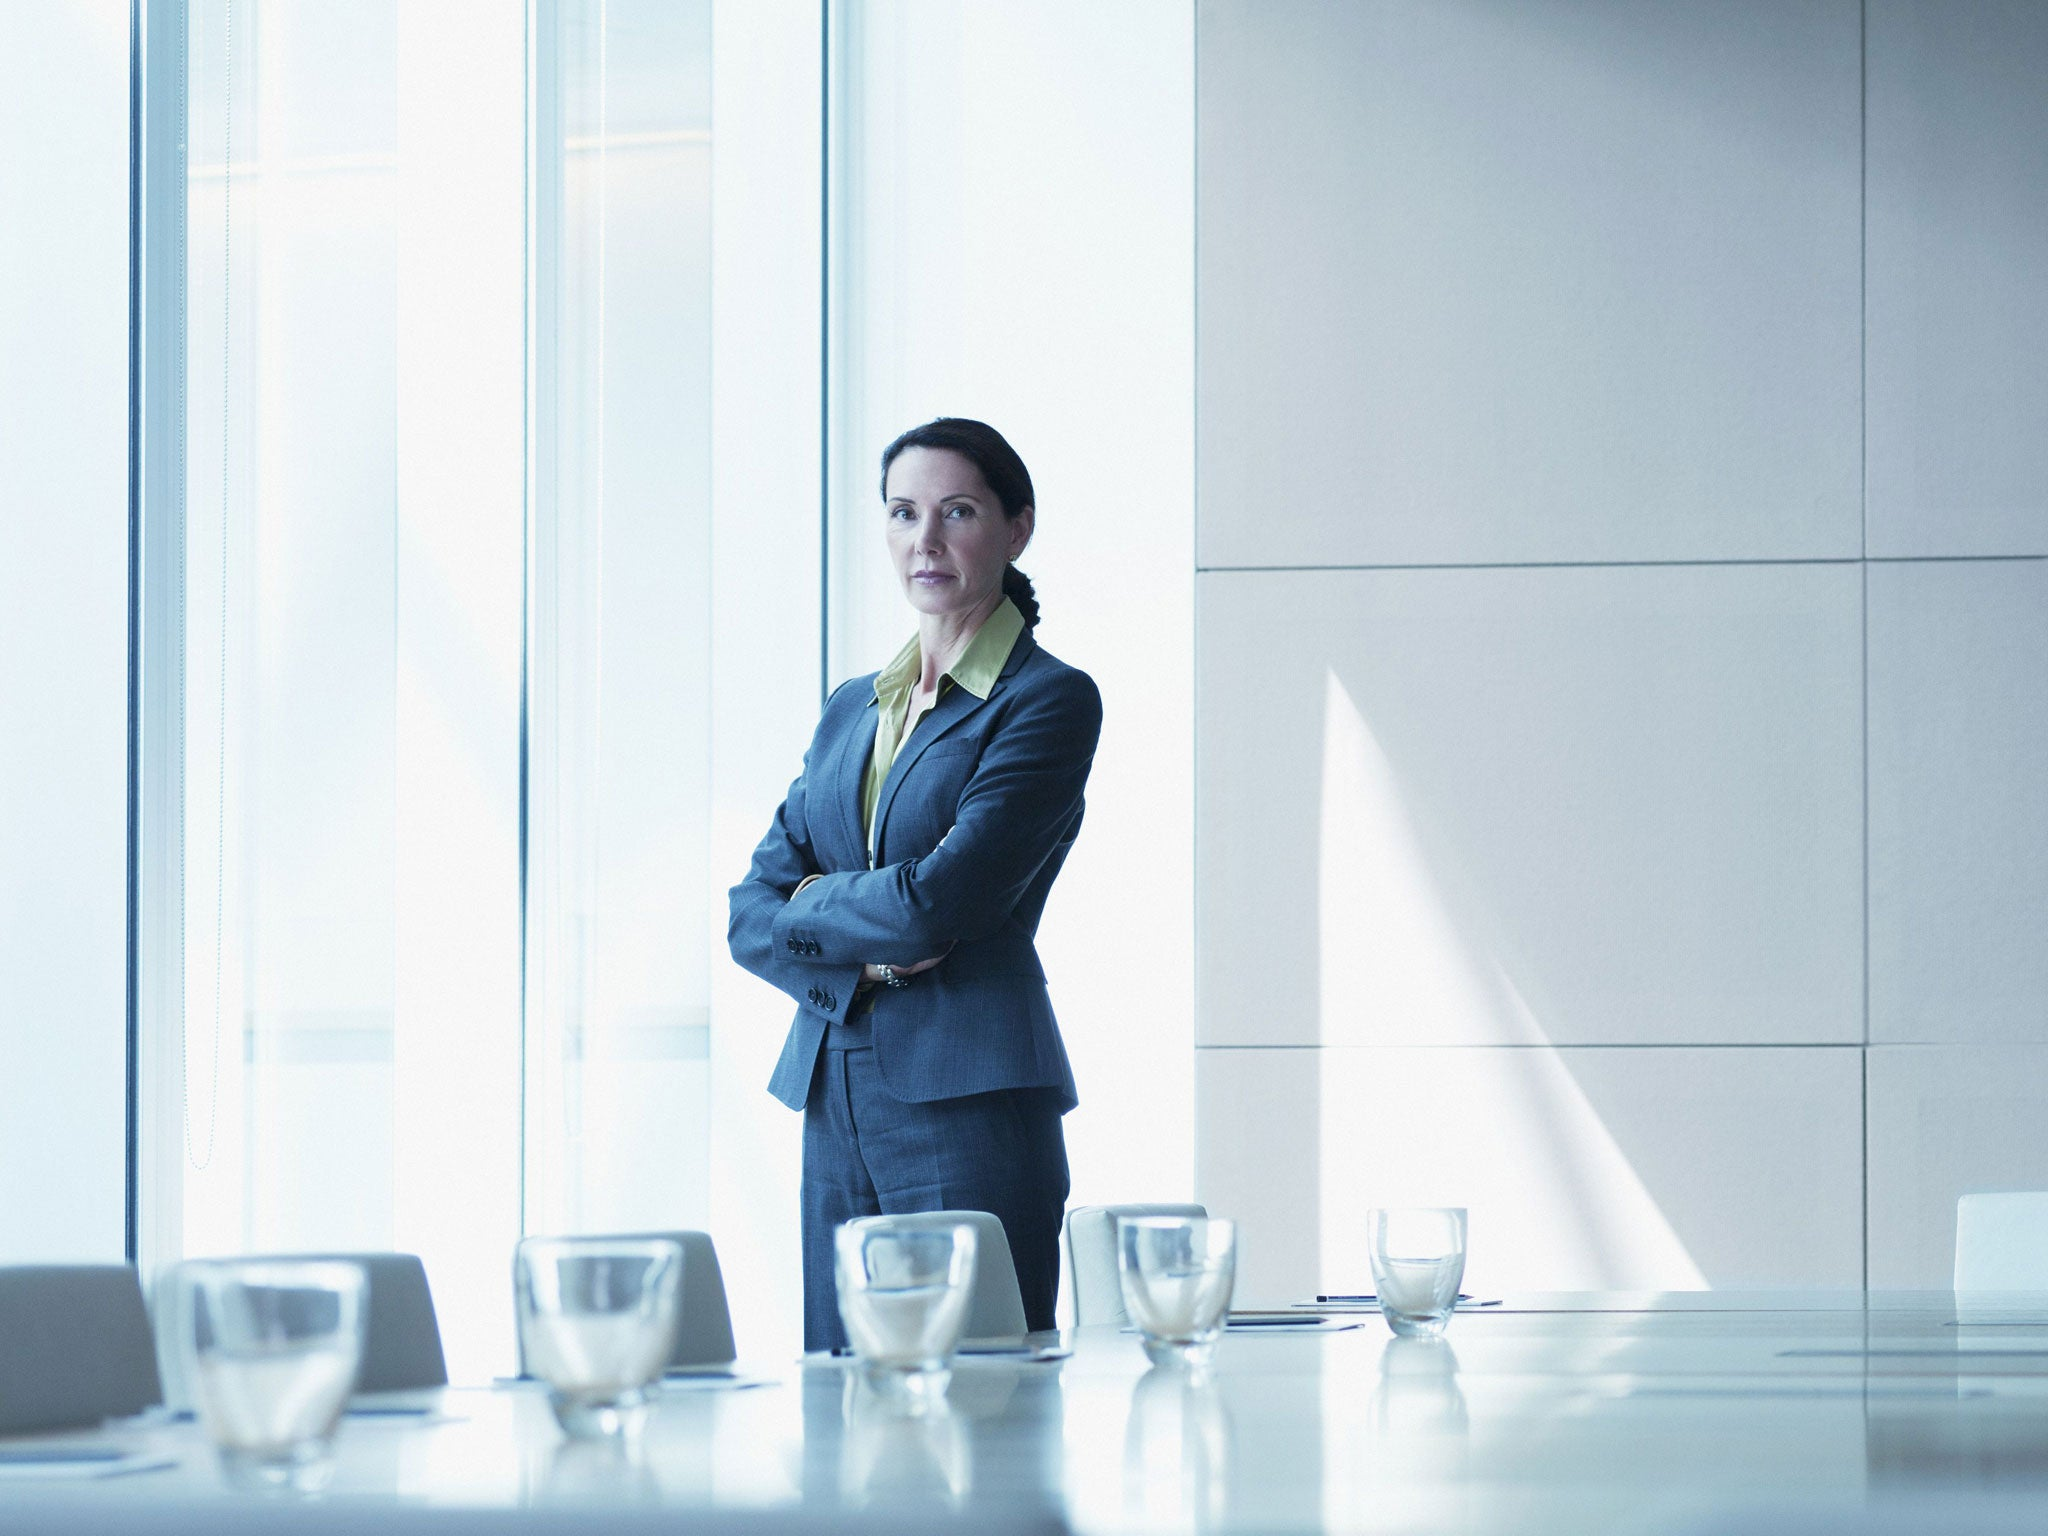 women corporate america glass ceiling thesis The glass ceiling effect is defined as an unofficial barrier to opportunities within an organization or company preventing a protected classes of workers, particularly women, from advancing to higher positions ( glass.